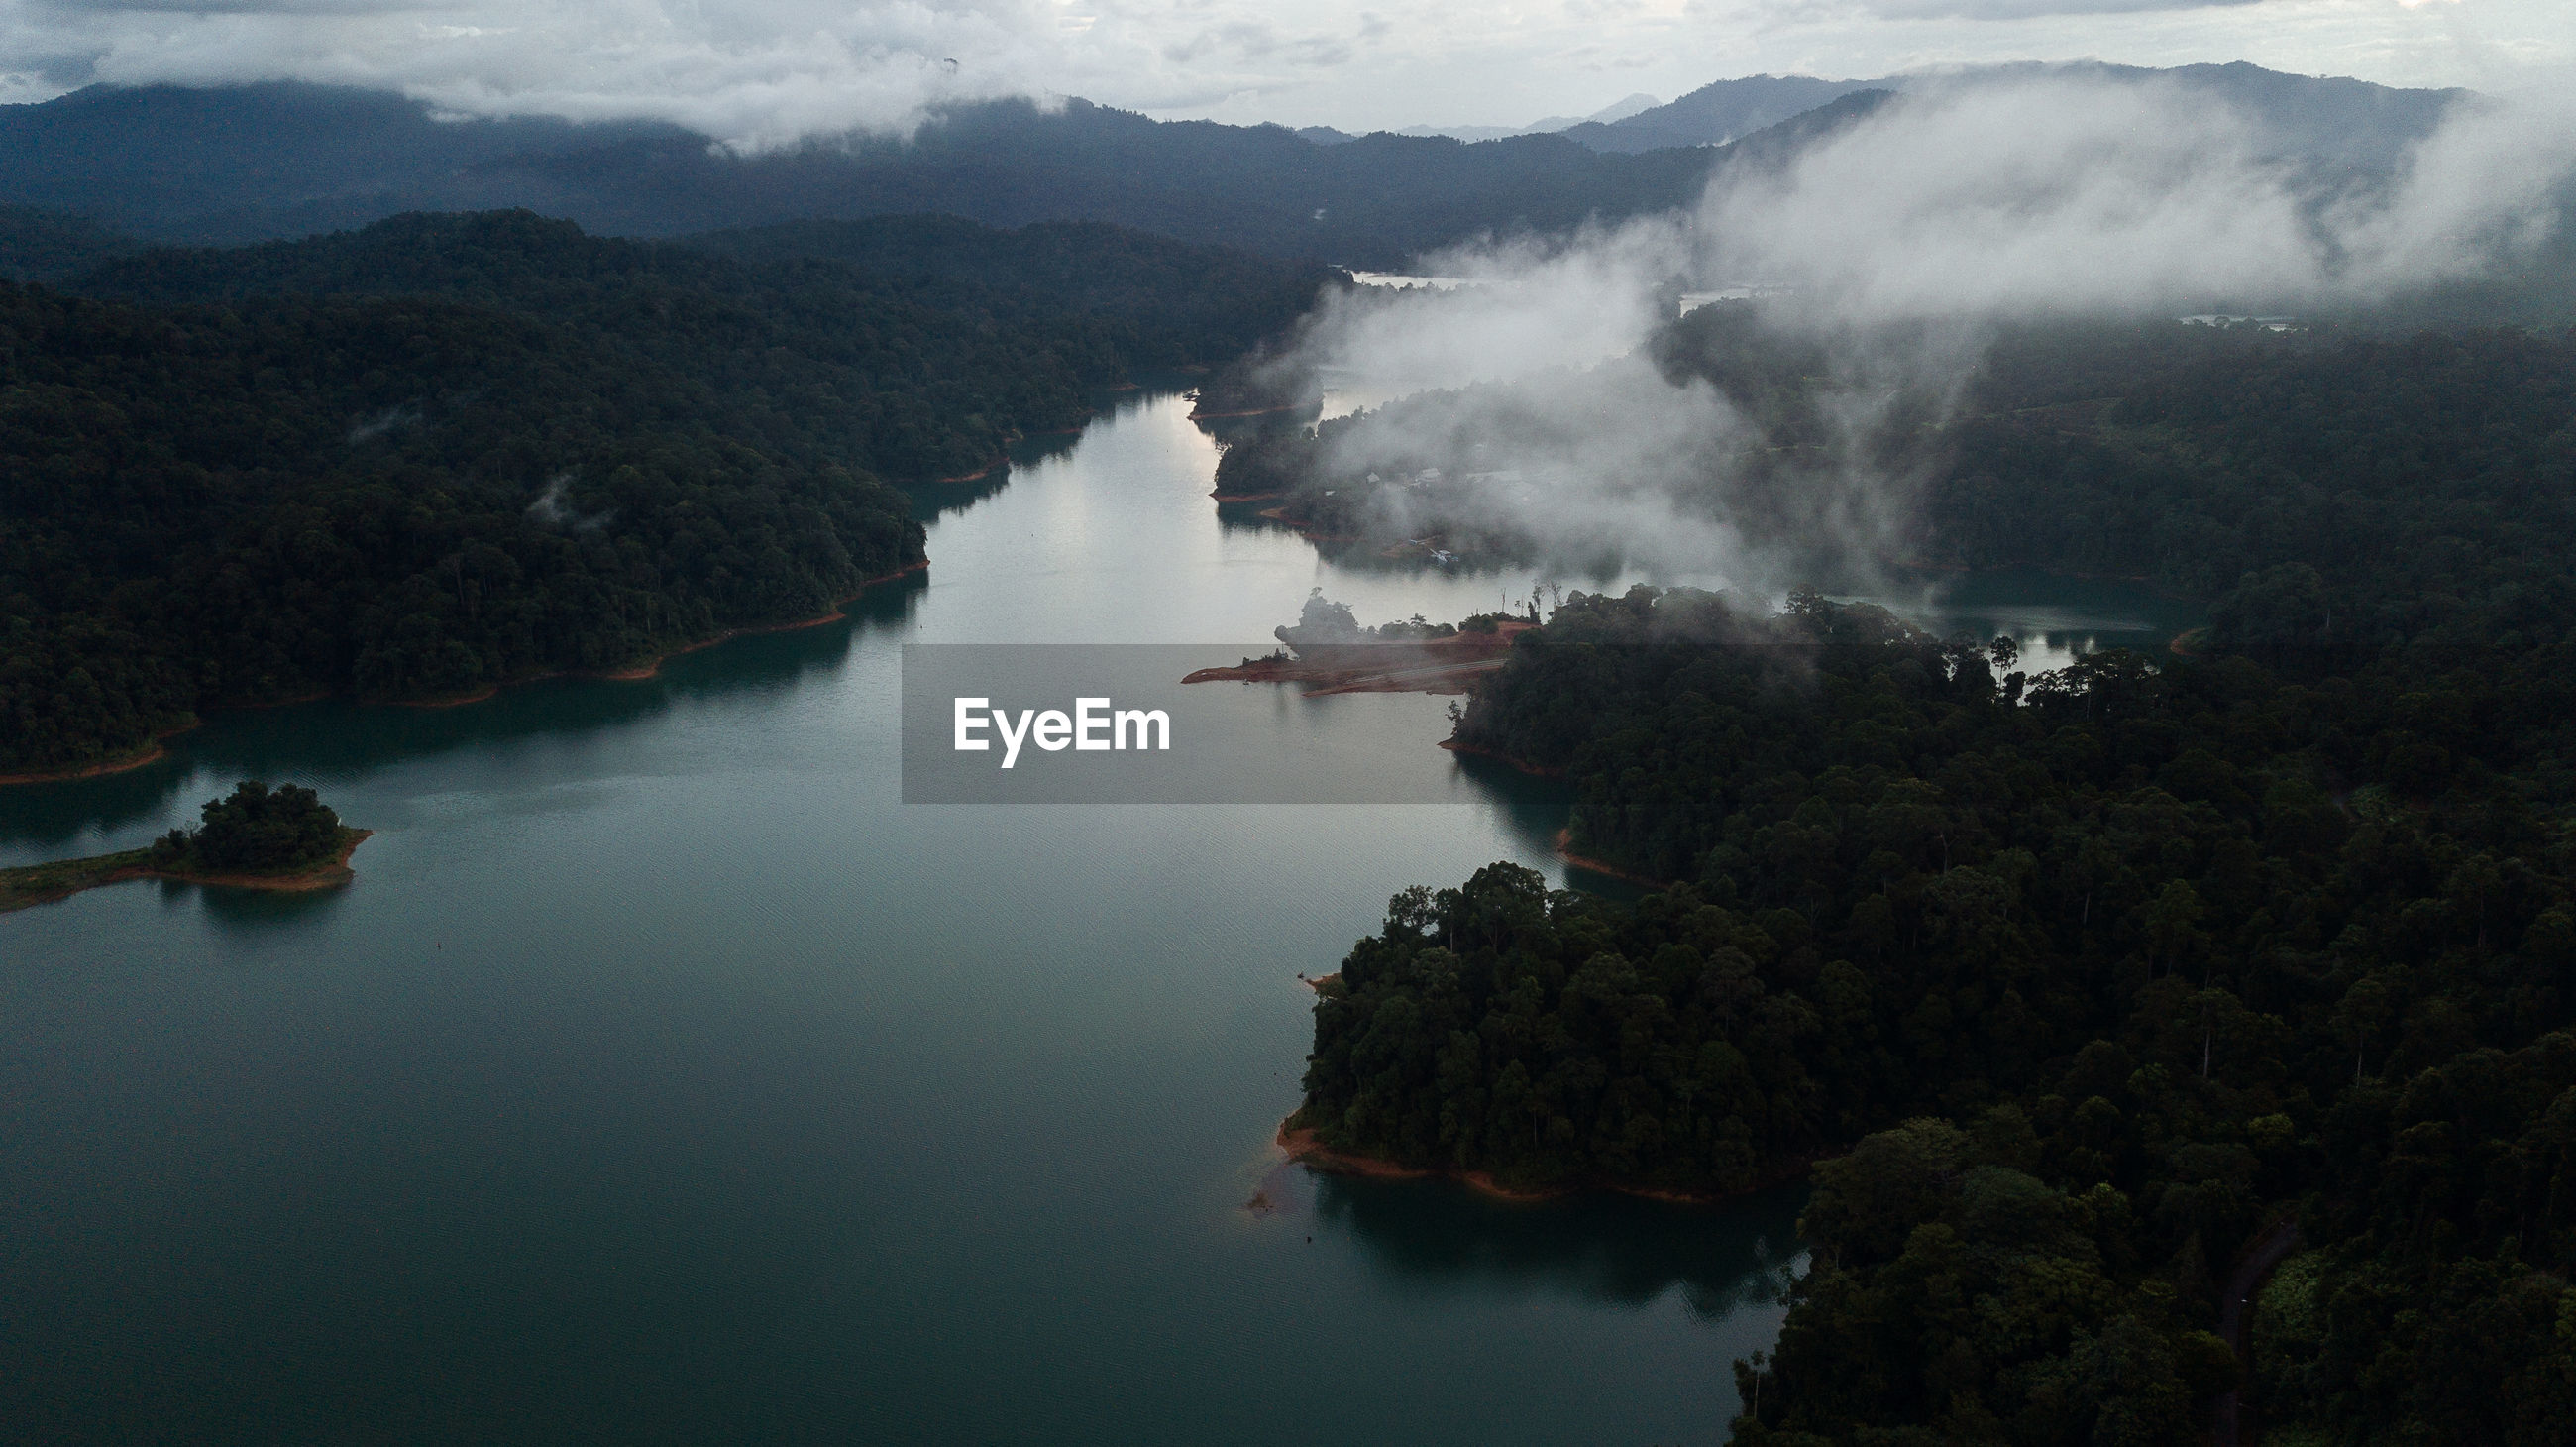 HIGH ANGLE VIEW OF LAKE AGAINST SKY